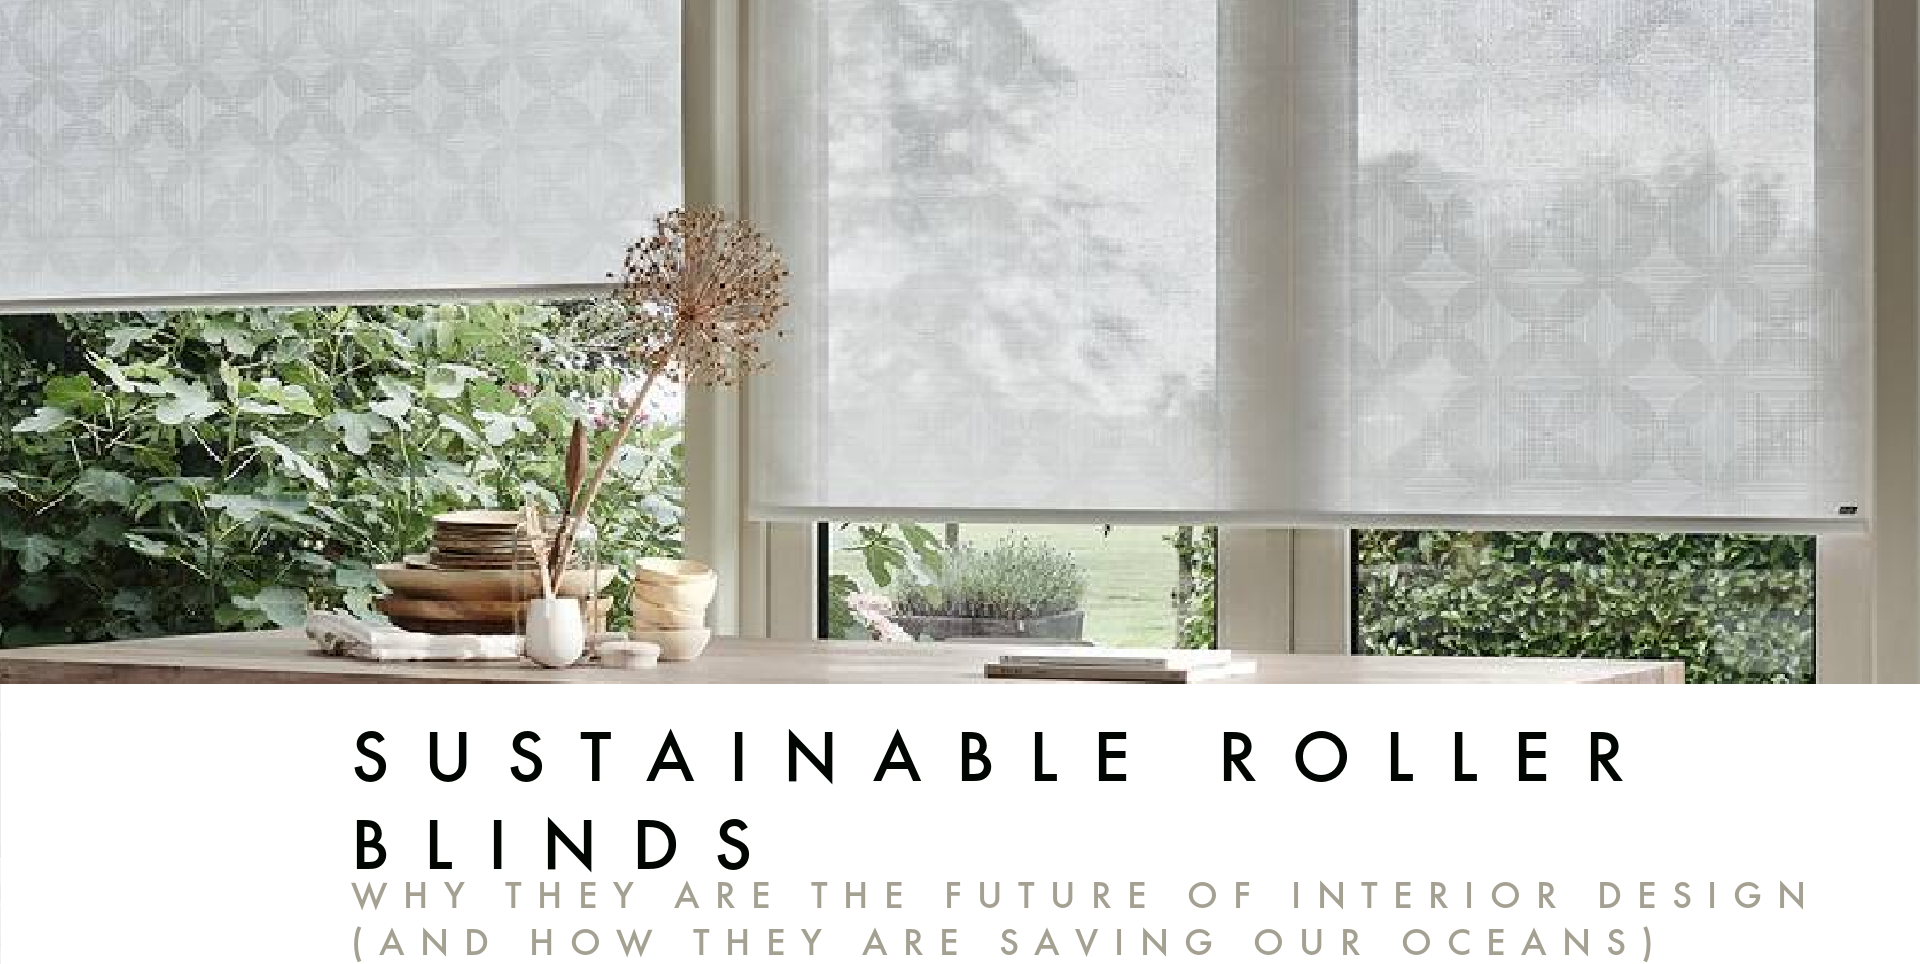 GreenScreen Sea-Tex eco thread sustainable roller blinds in dining room window